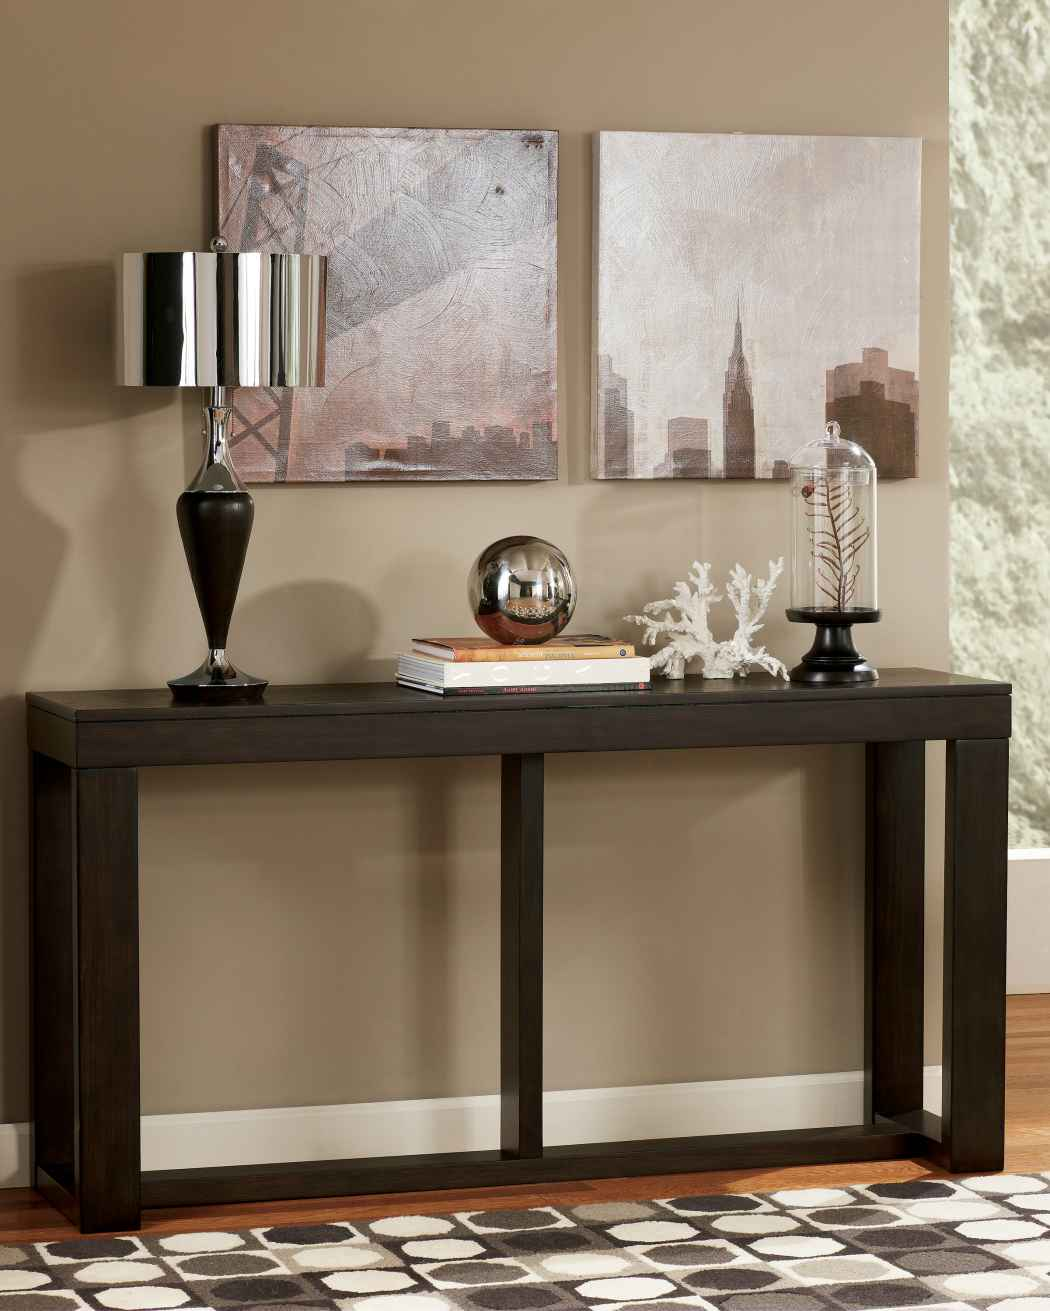 - Corner Accent Table Decor - Appliance In Home